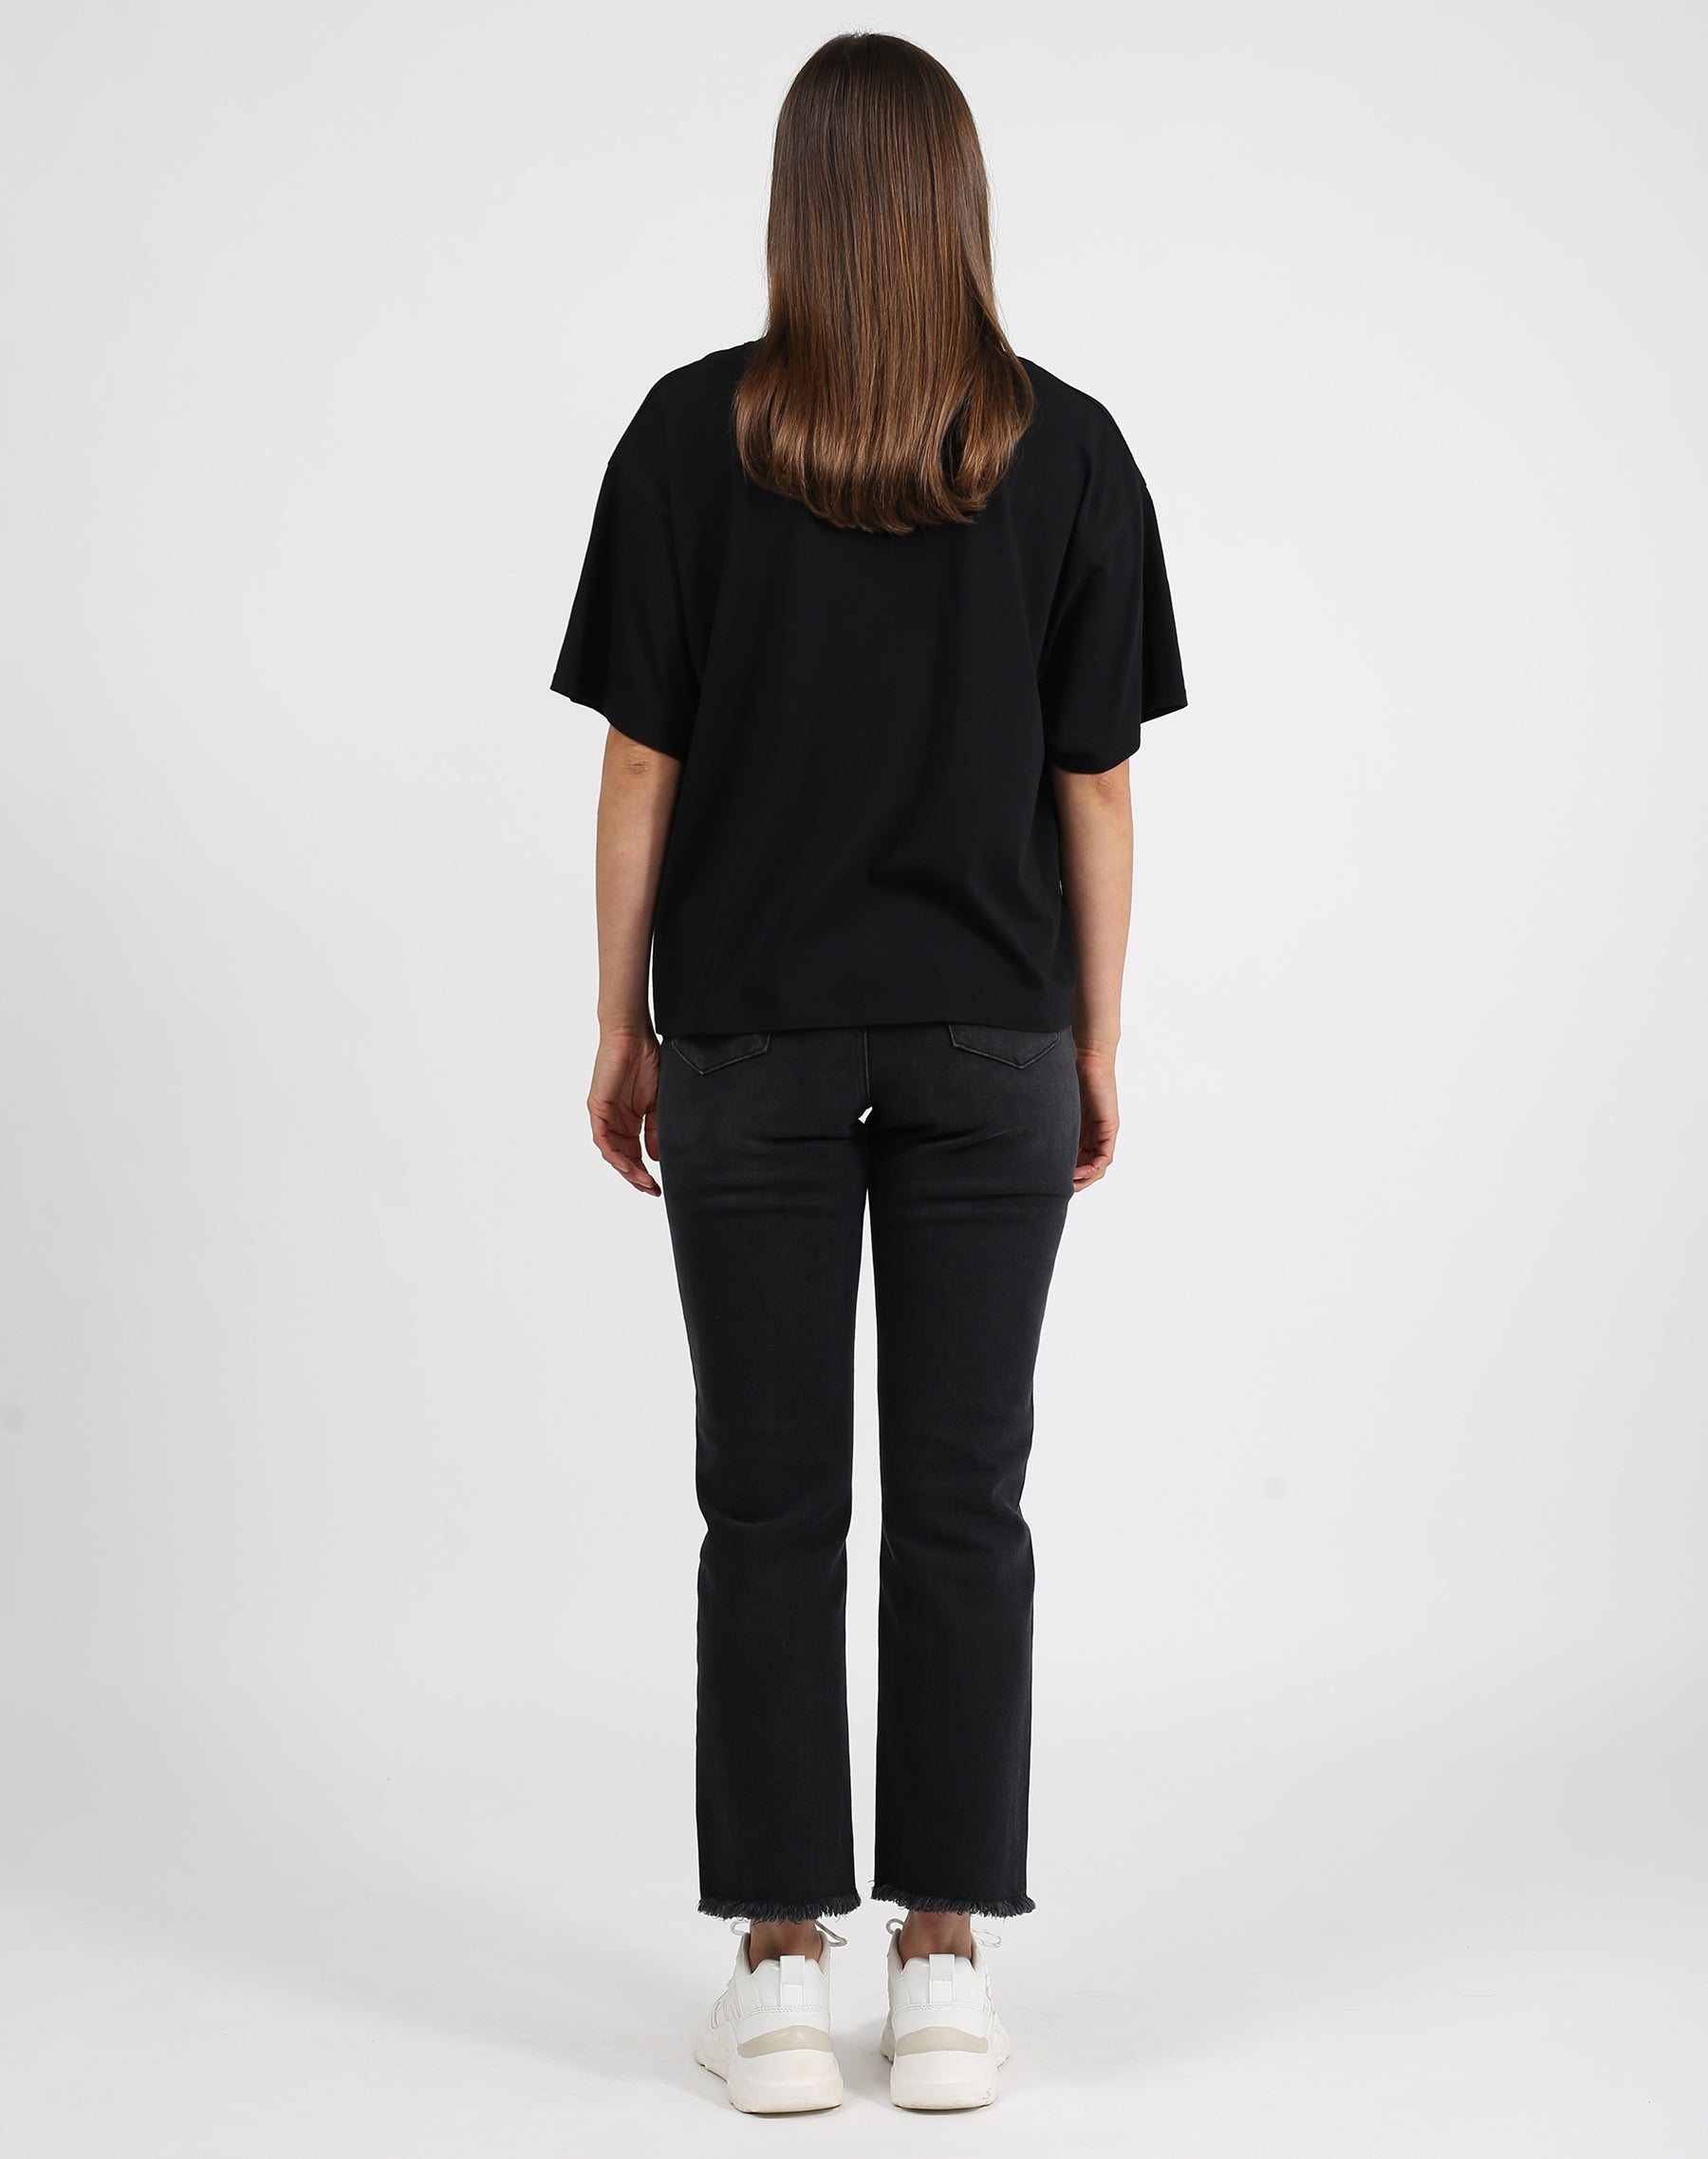 This is a photo of the back of a model wearing the babes club horse boxy crew neck tee in black by brunette the label.